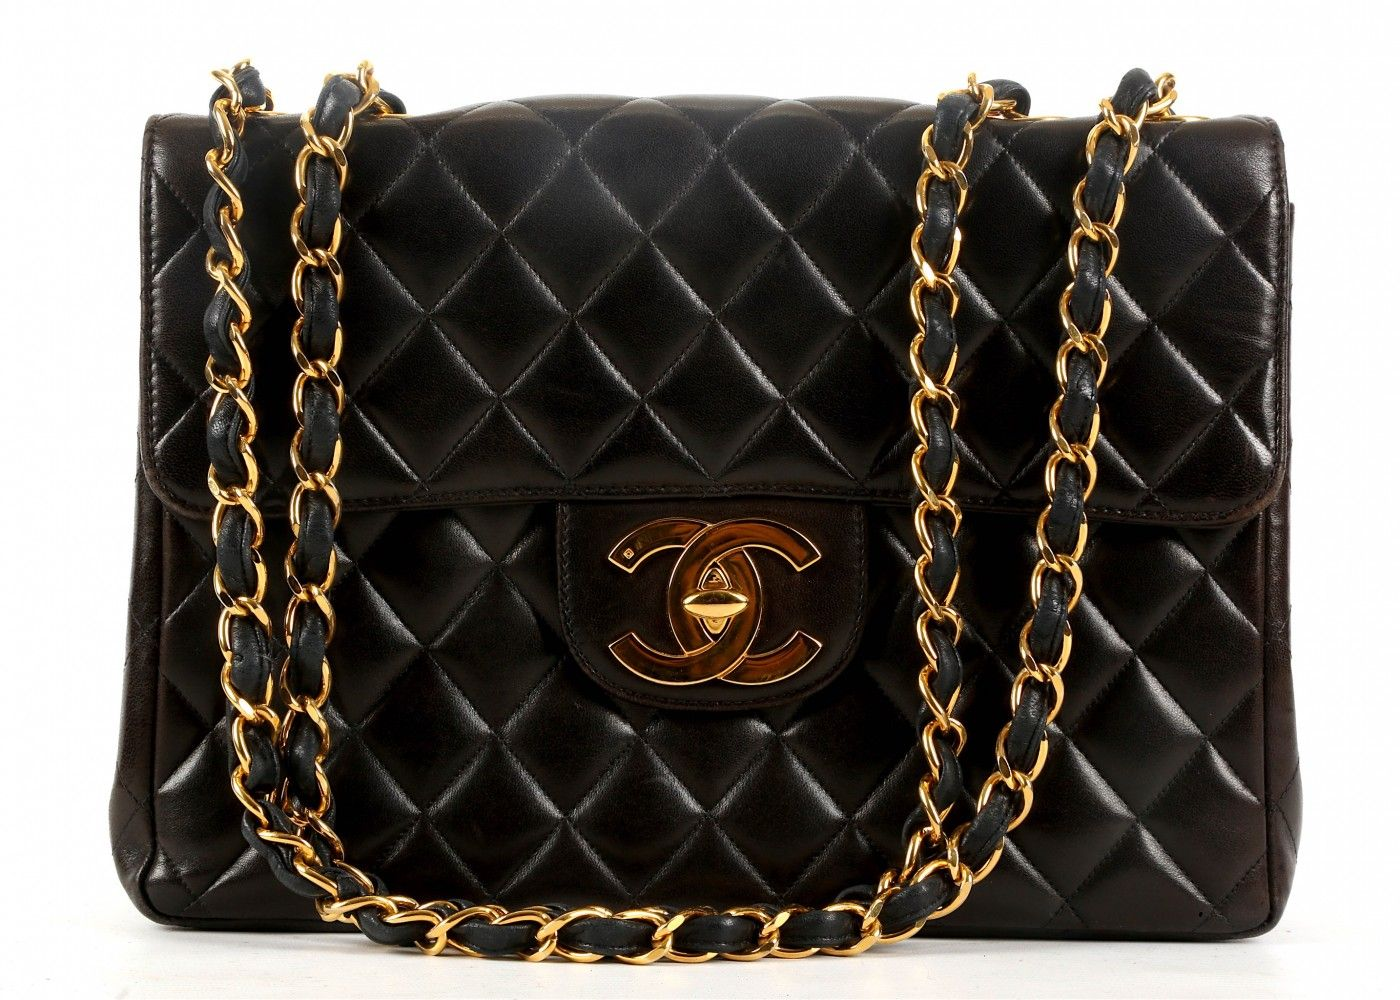 d4bbbbd3bf11 CHANEL JUMBO FLAP BAG, datecode for 1997-1999, quilted black lambskin with  gilt metal hardware, 30cm wide, 20cm high, with authenticity card and dust  bag